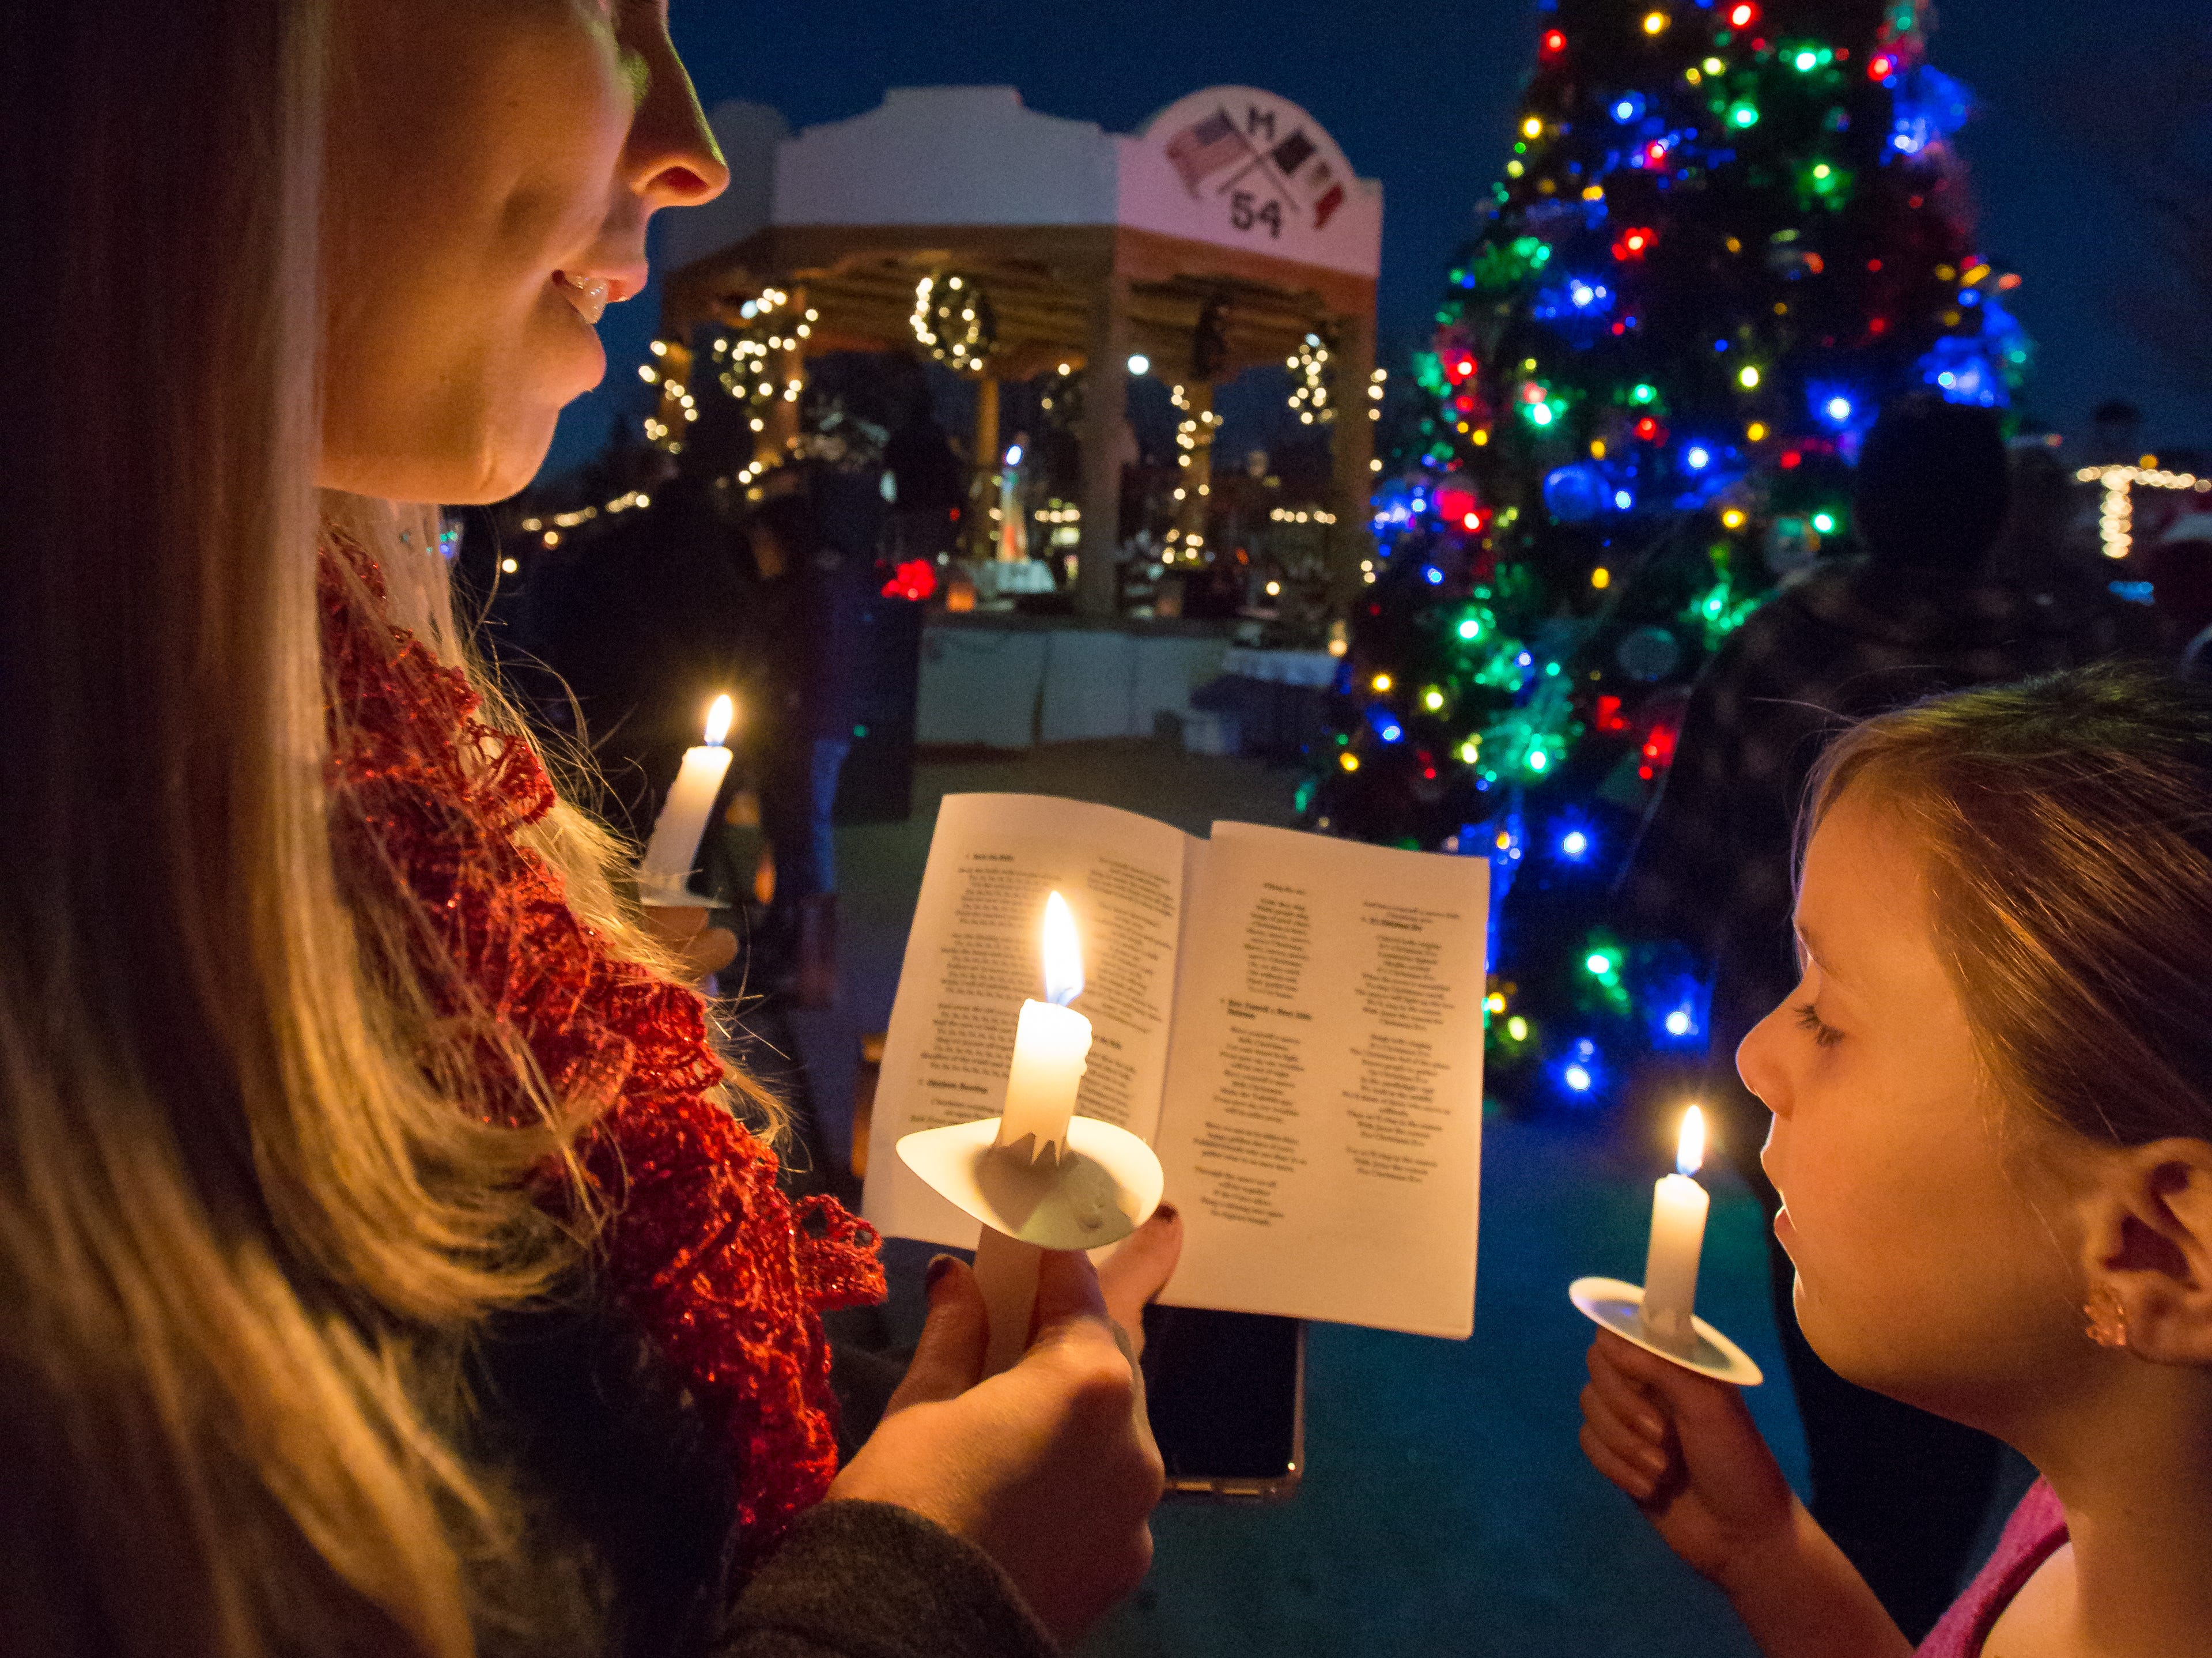 Christine Barela, and her daughter Ana, 7, of Las Cruces, sing carols during a Christmas Eve celebration onthe Mesilla Plaza on Monday, Dec. 24, 2018. Thousands attended to event to sing carols, browse shops and drink hot cocoa surrounded by6,000 luminarias along the streets of Mesilla.